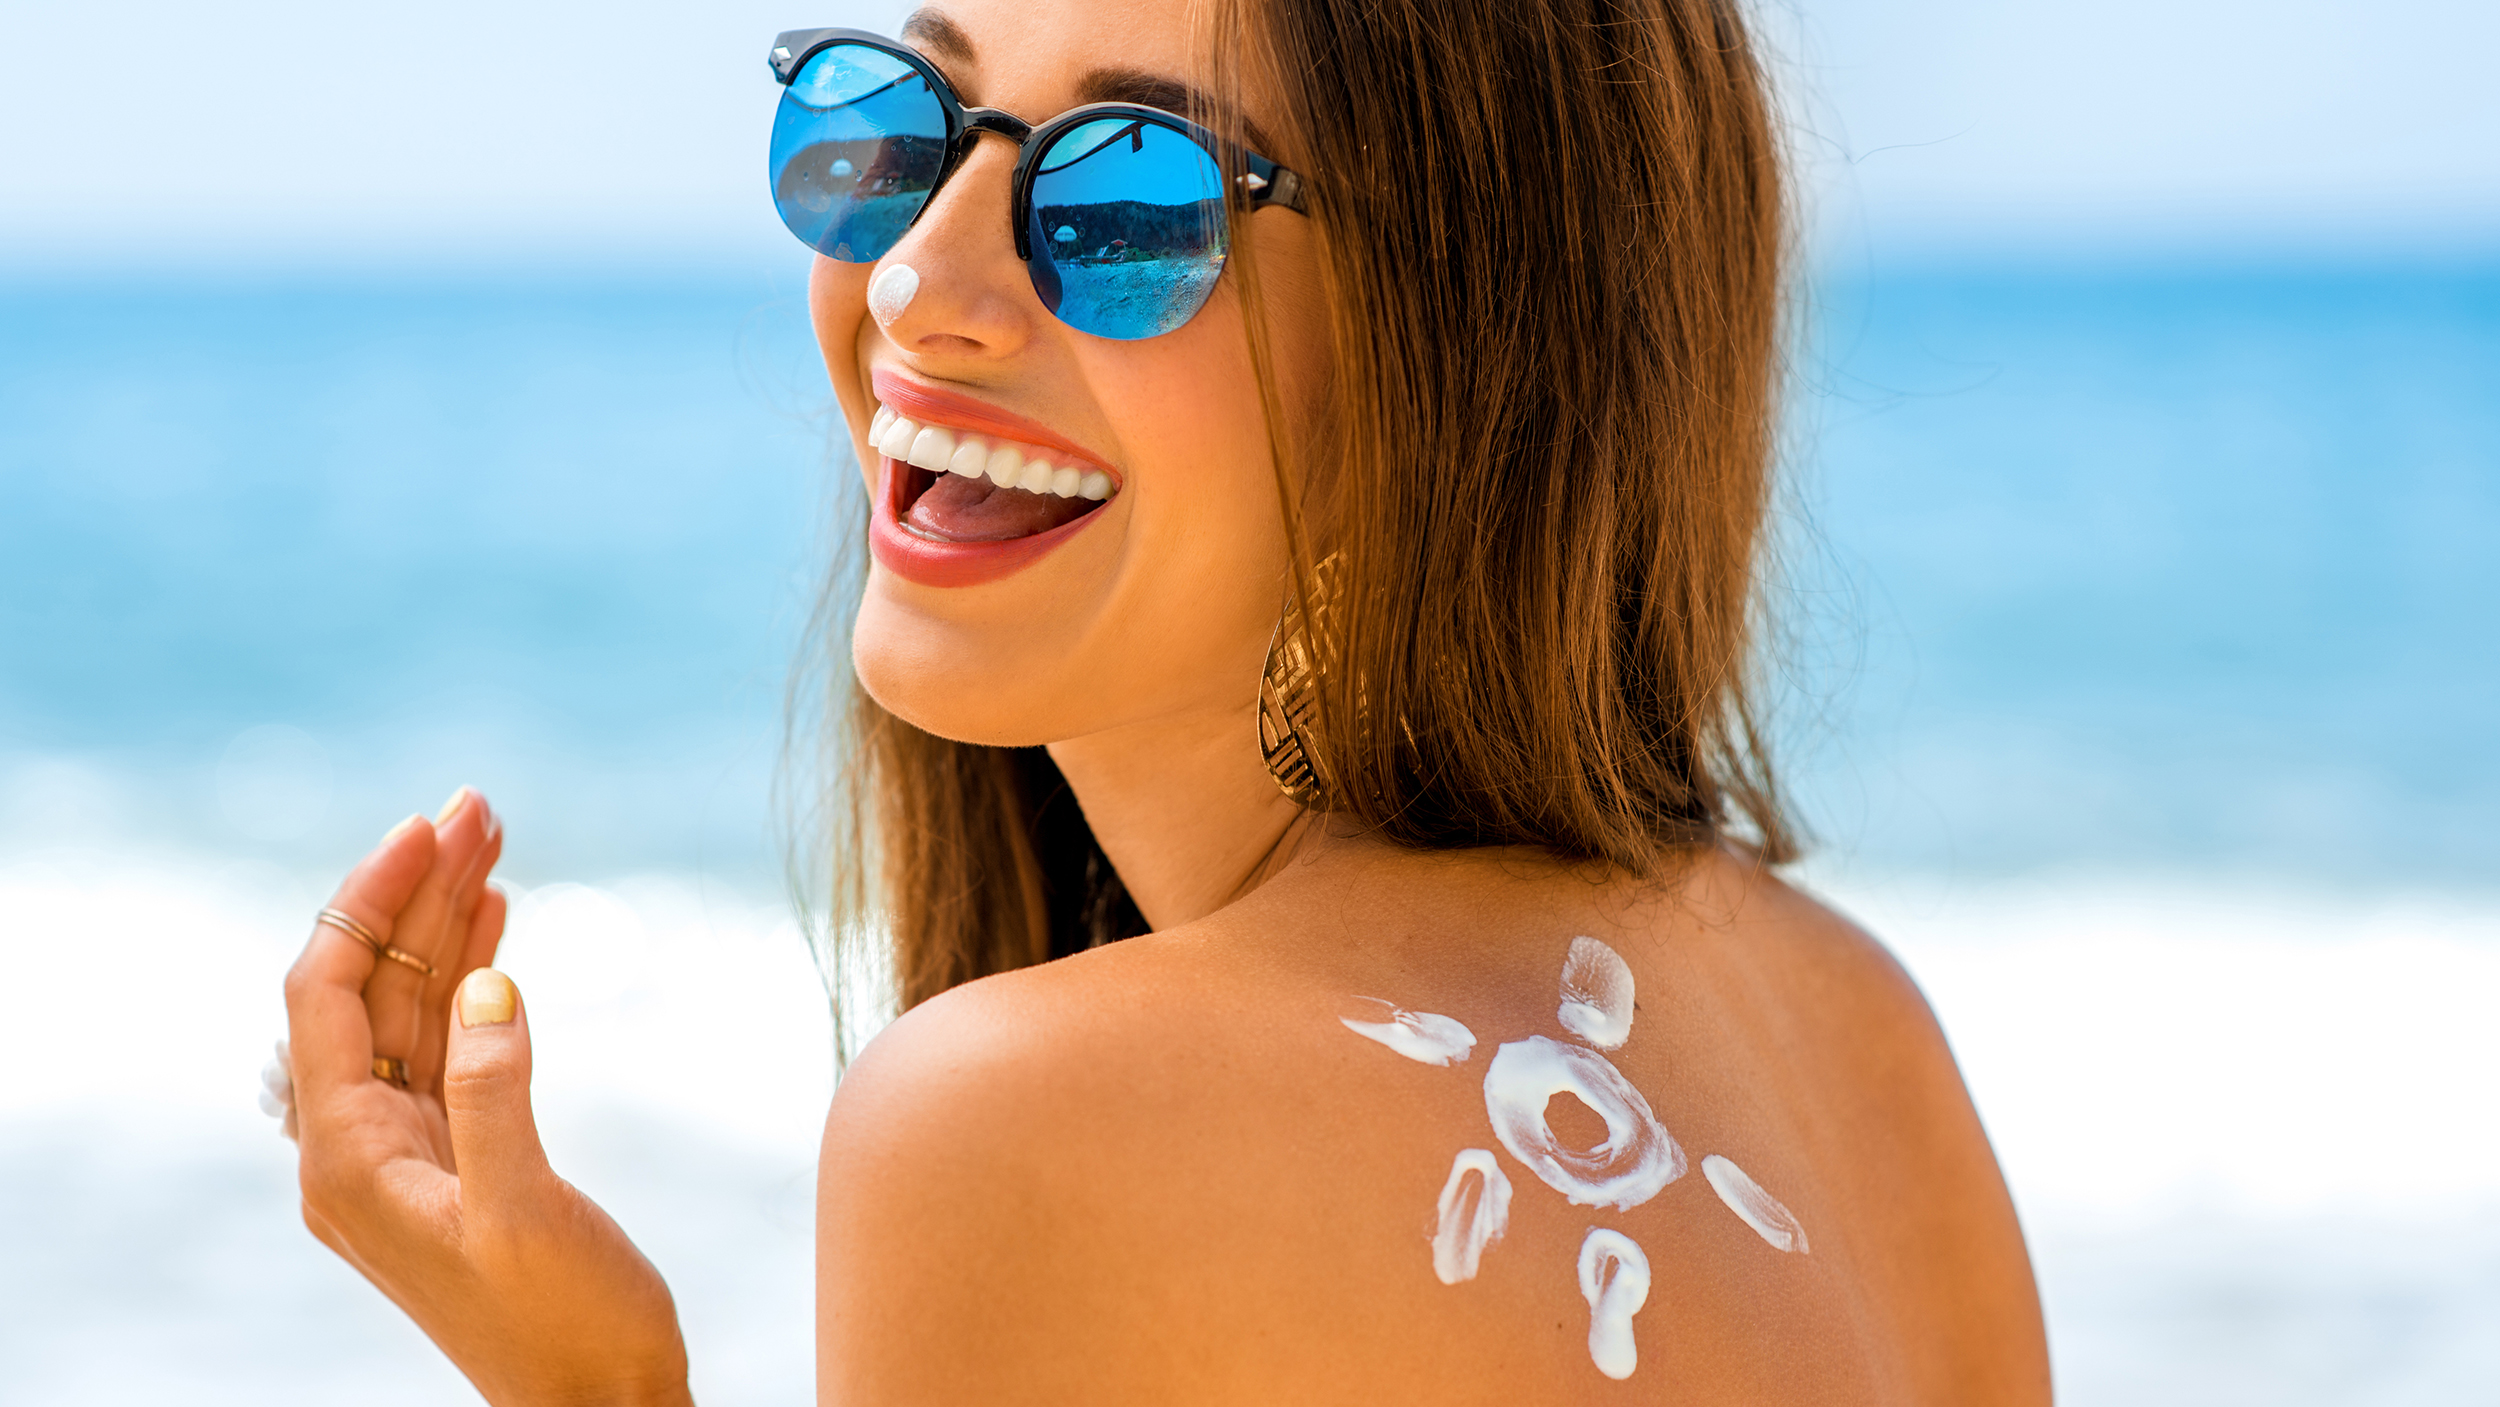 Things To Look For In A Sunscreen - Health & Glow